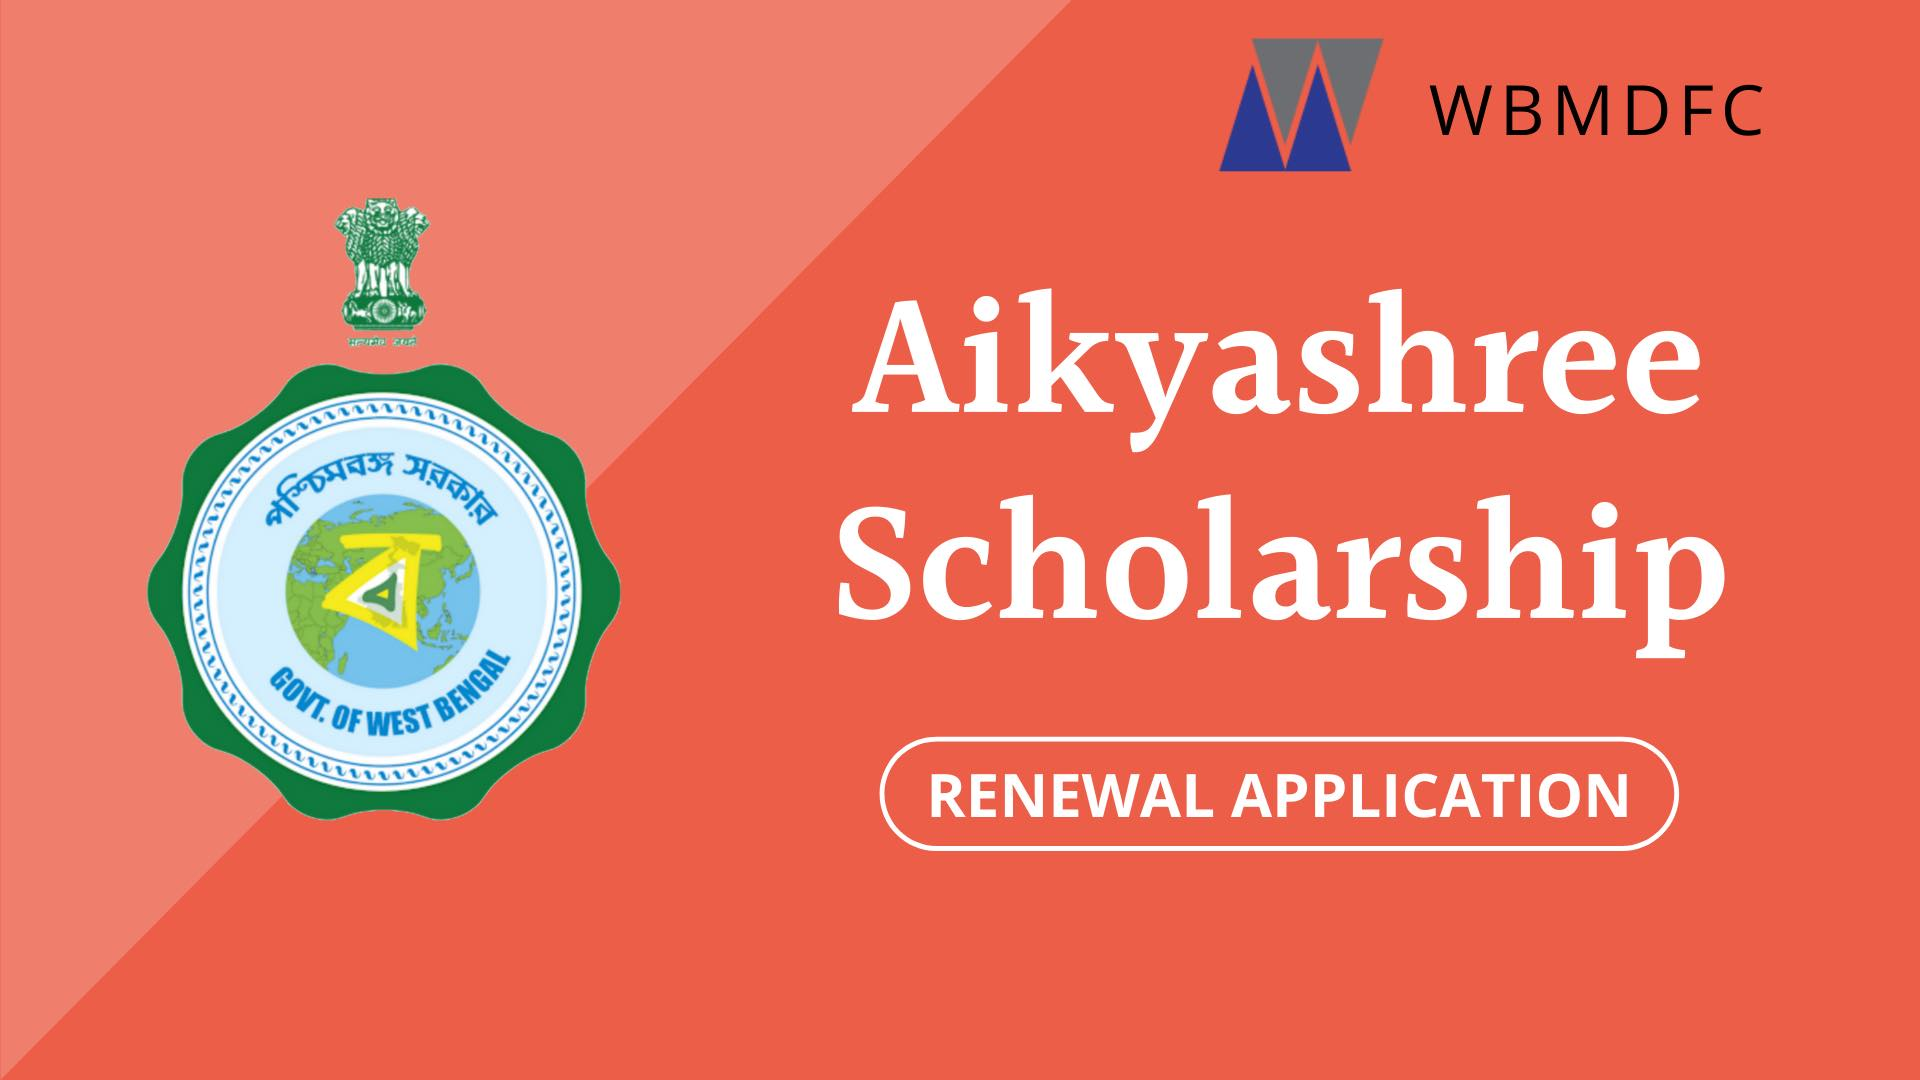 Aikyashree Scholarship Renewal Application